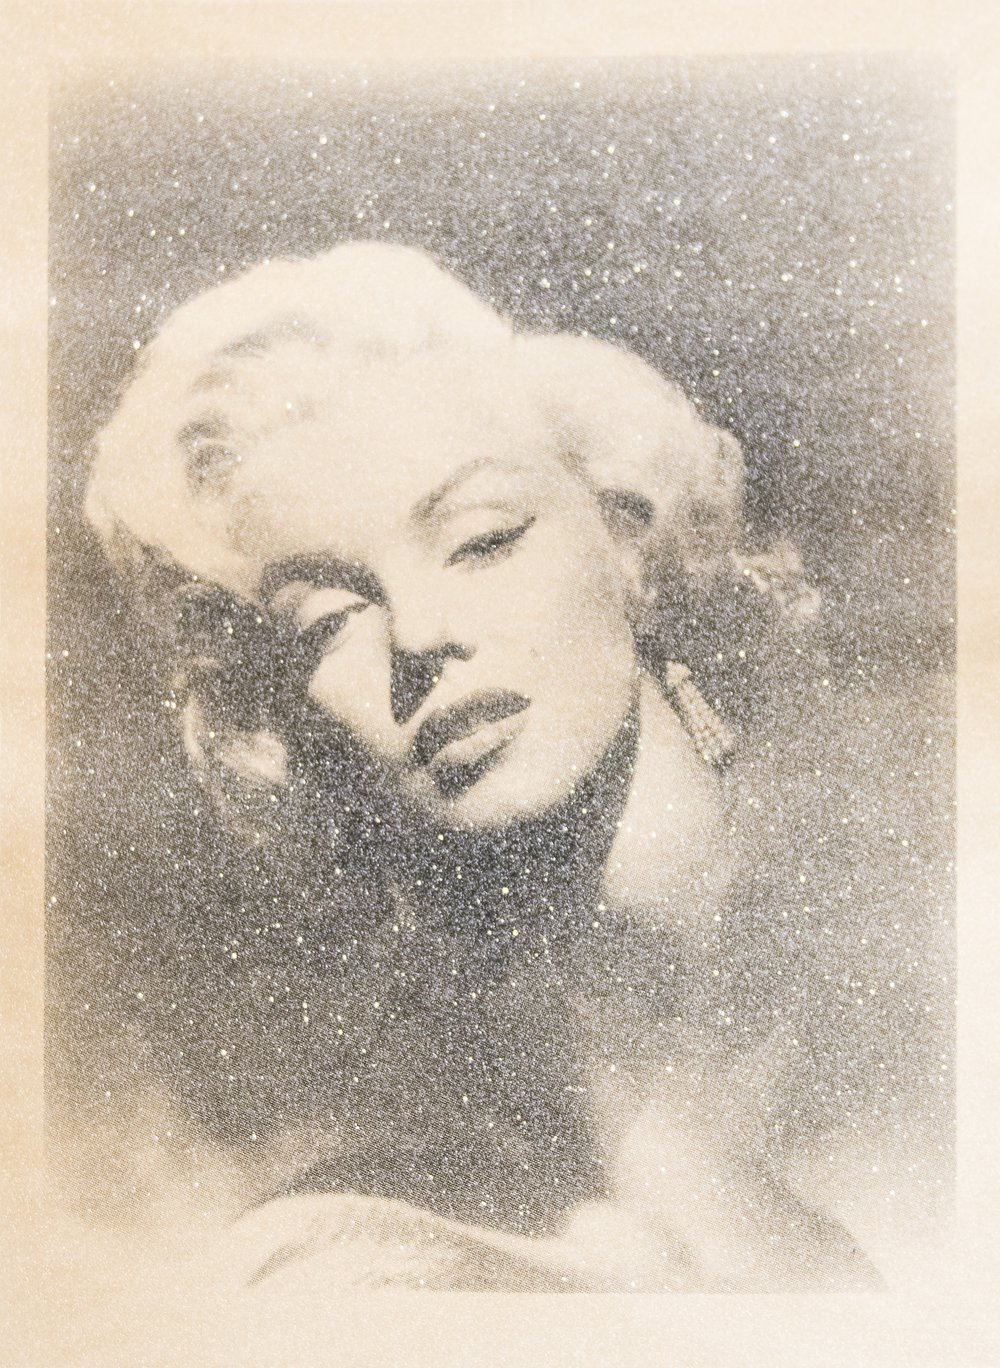 Russell Young, Marilyn Glamour, 2010, Screenprint Acrylic Paint and Diamond Dust on Linen, 37 x 29 inches.